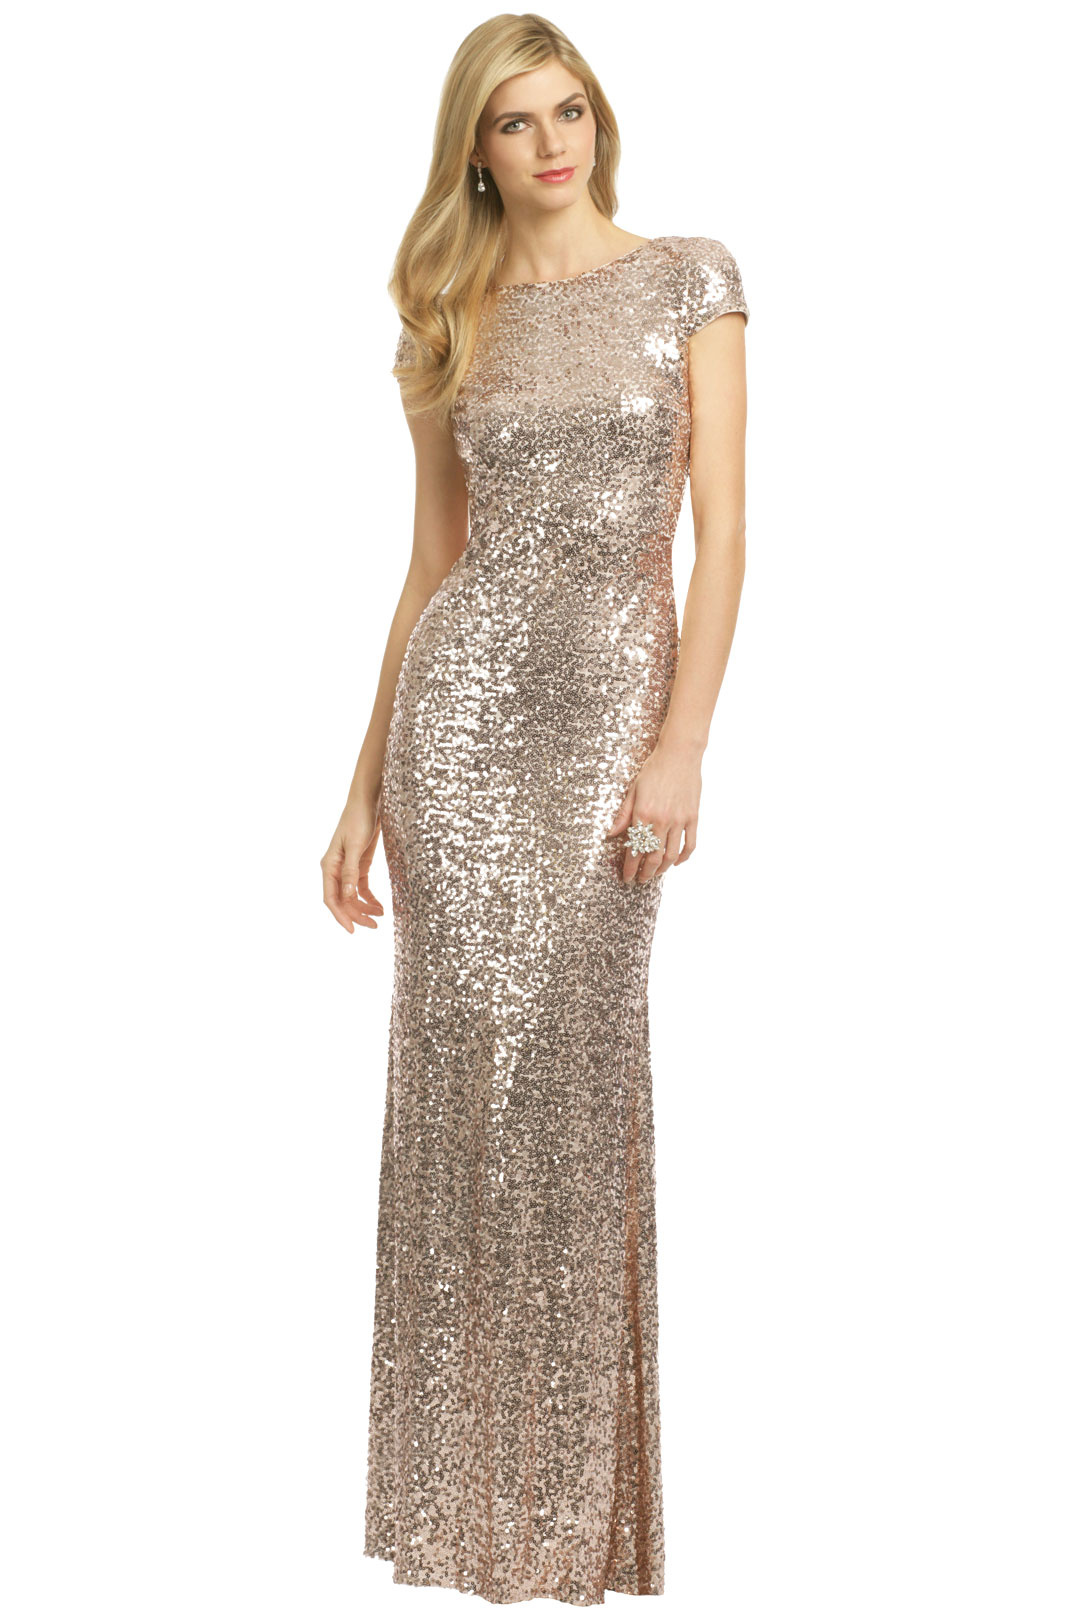 Glamorous Badgley Mischka Dresses for Parties – careyfashion.com